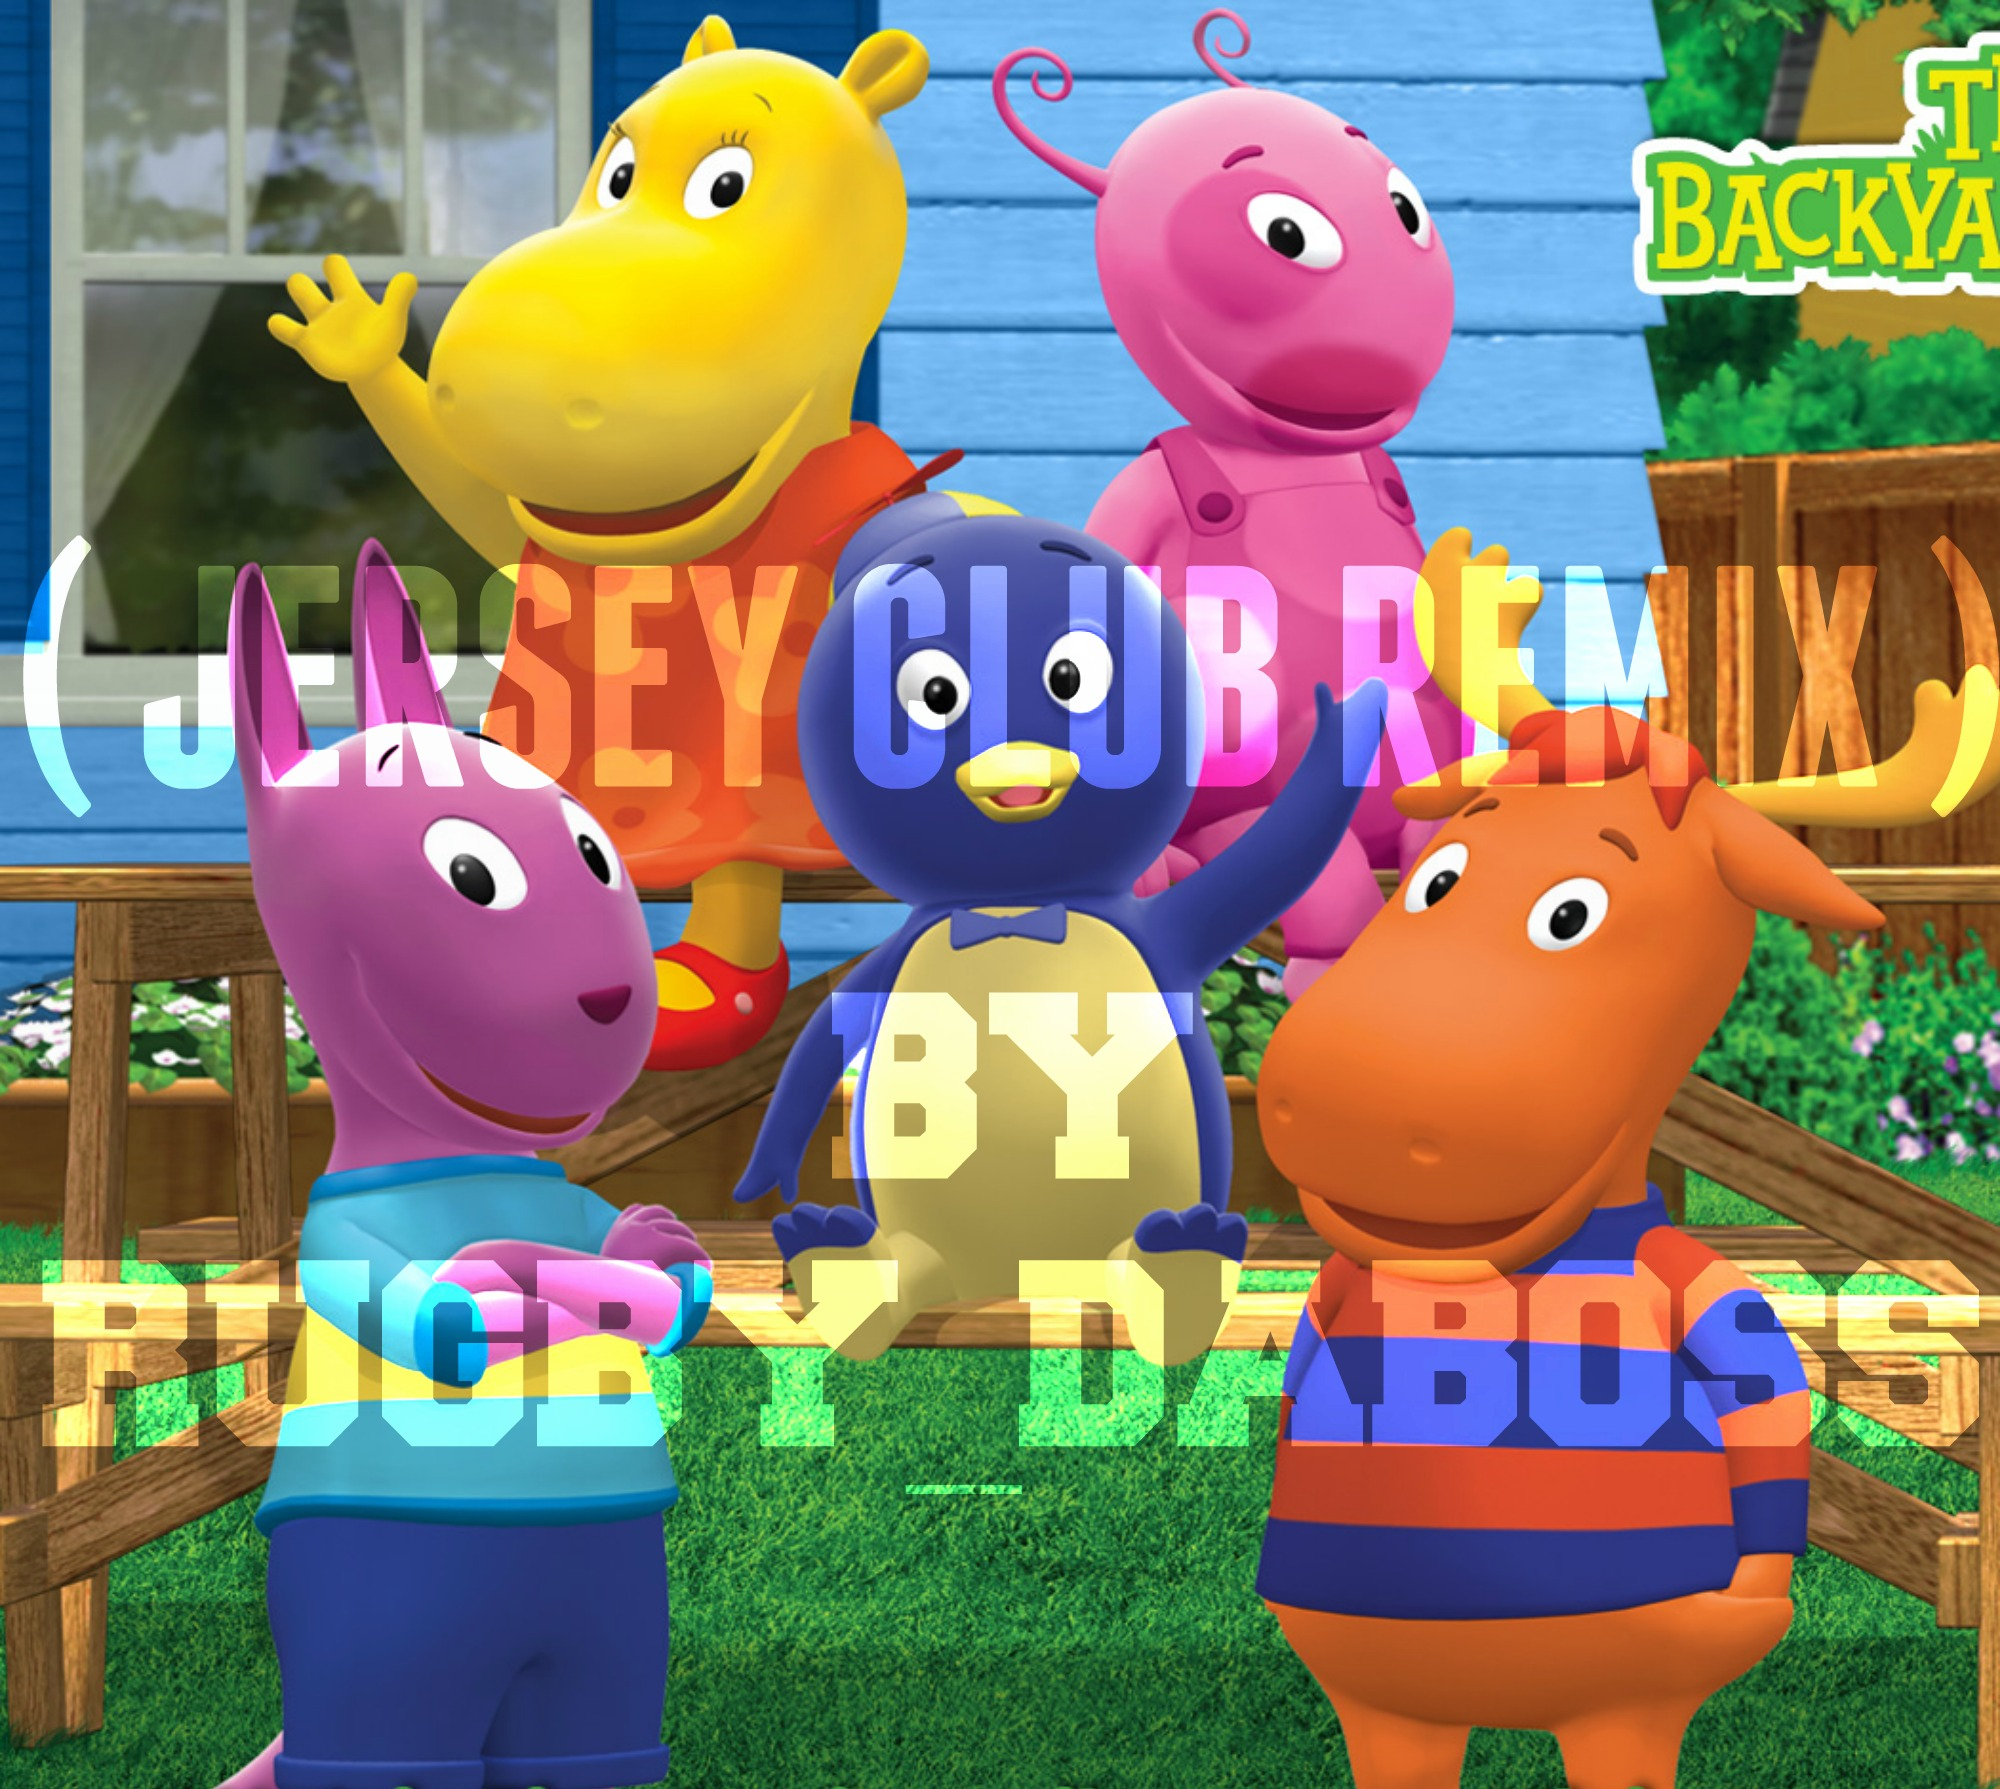 Download The Backyardigans Theme Song Jersey Club Remix Made Prod By Rugby Daboss By Rugby Dįnerø Mp3 Soundcloud To Mp3 Converter